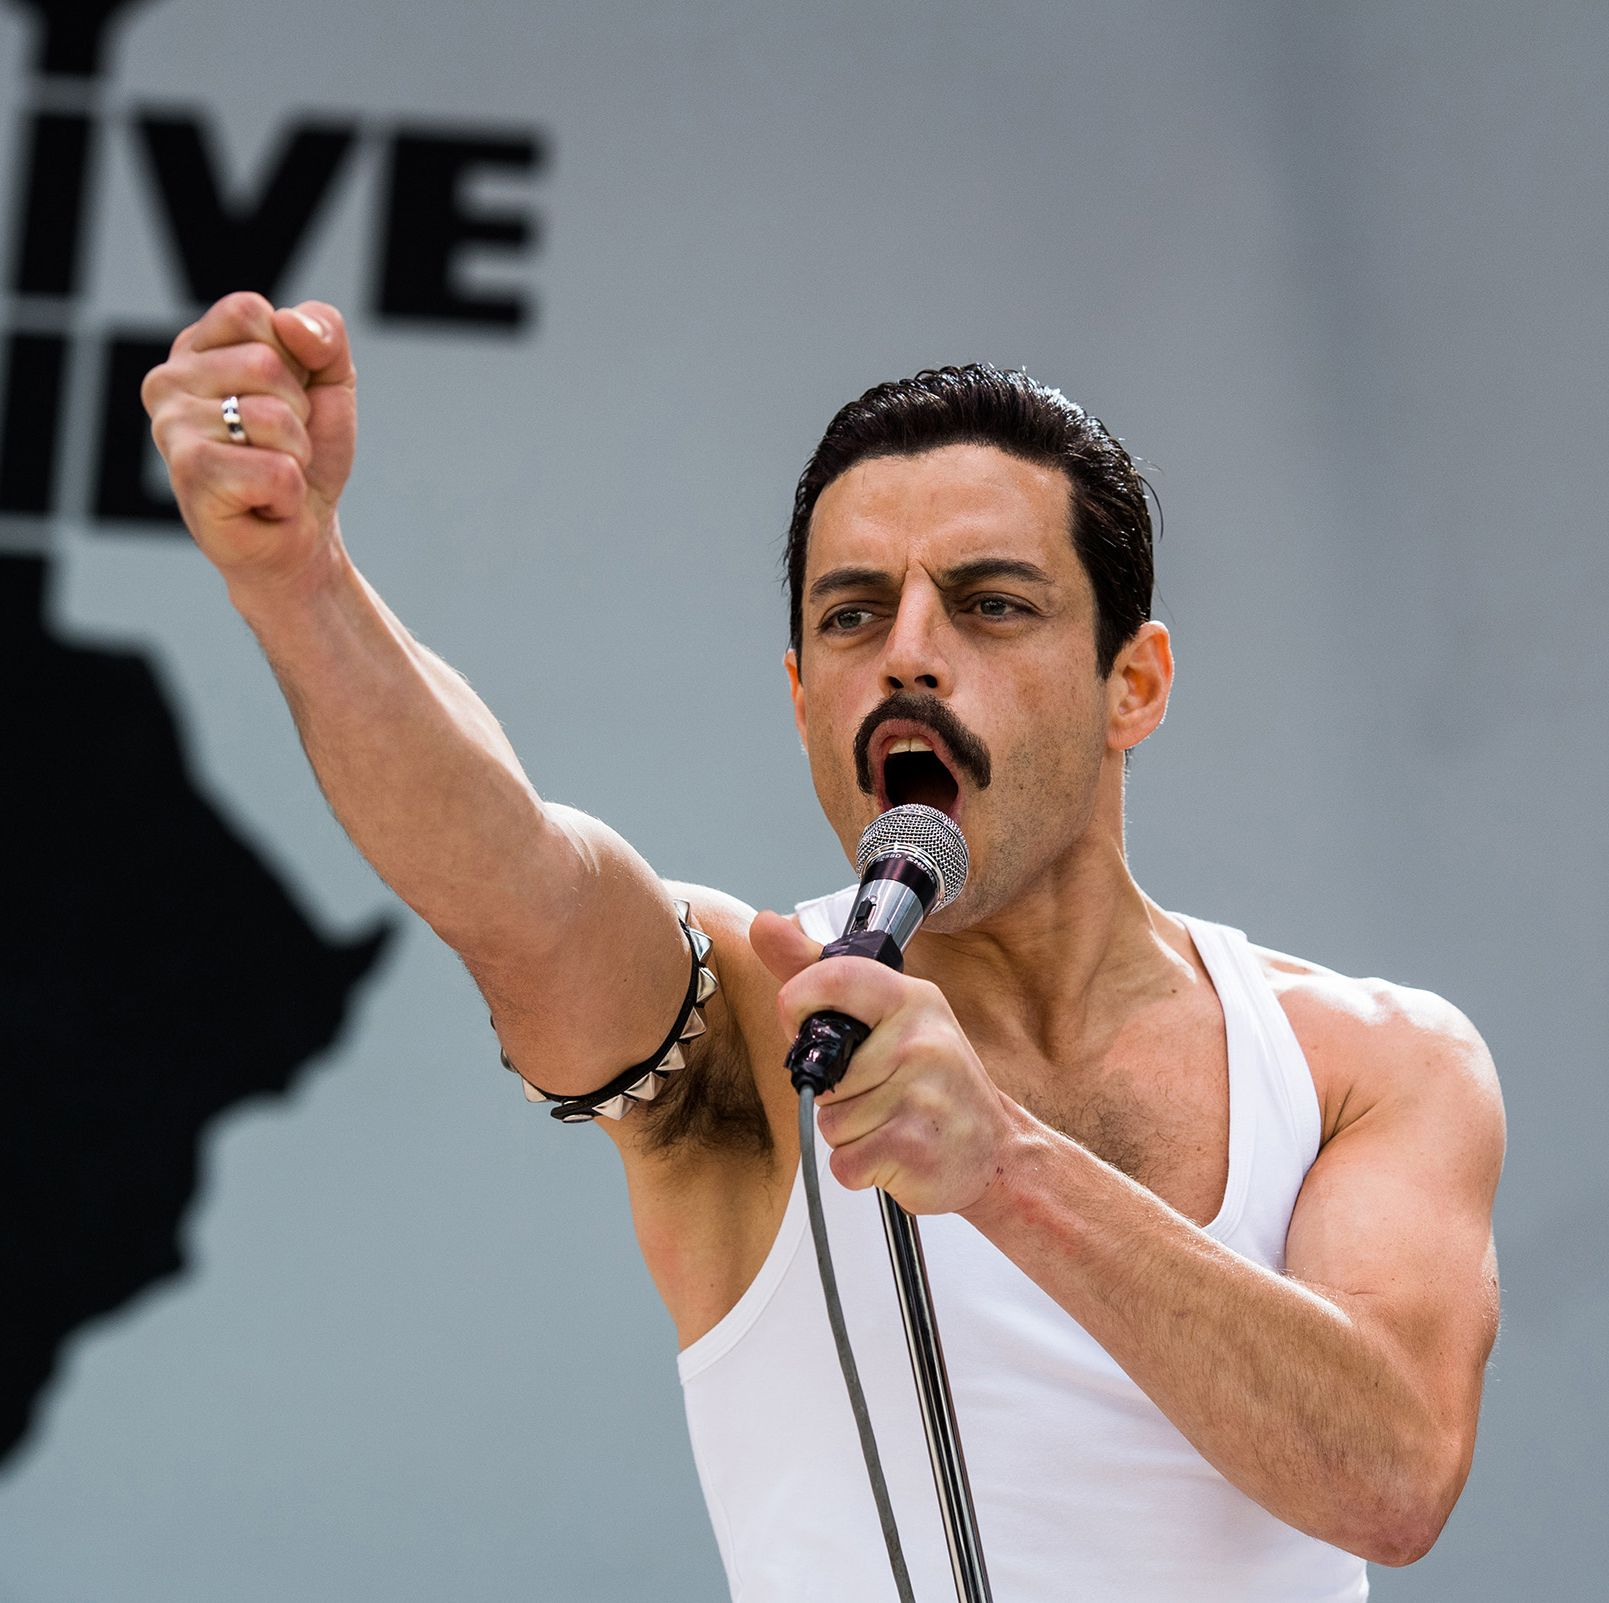 Bohemian Rhapsody's Historical Inaccuracies Aren't Just Dramatic License. They Are Signs of Lazy Filmmaking.